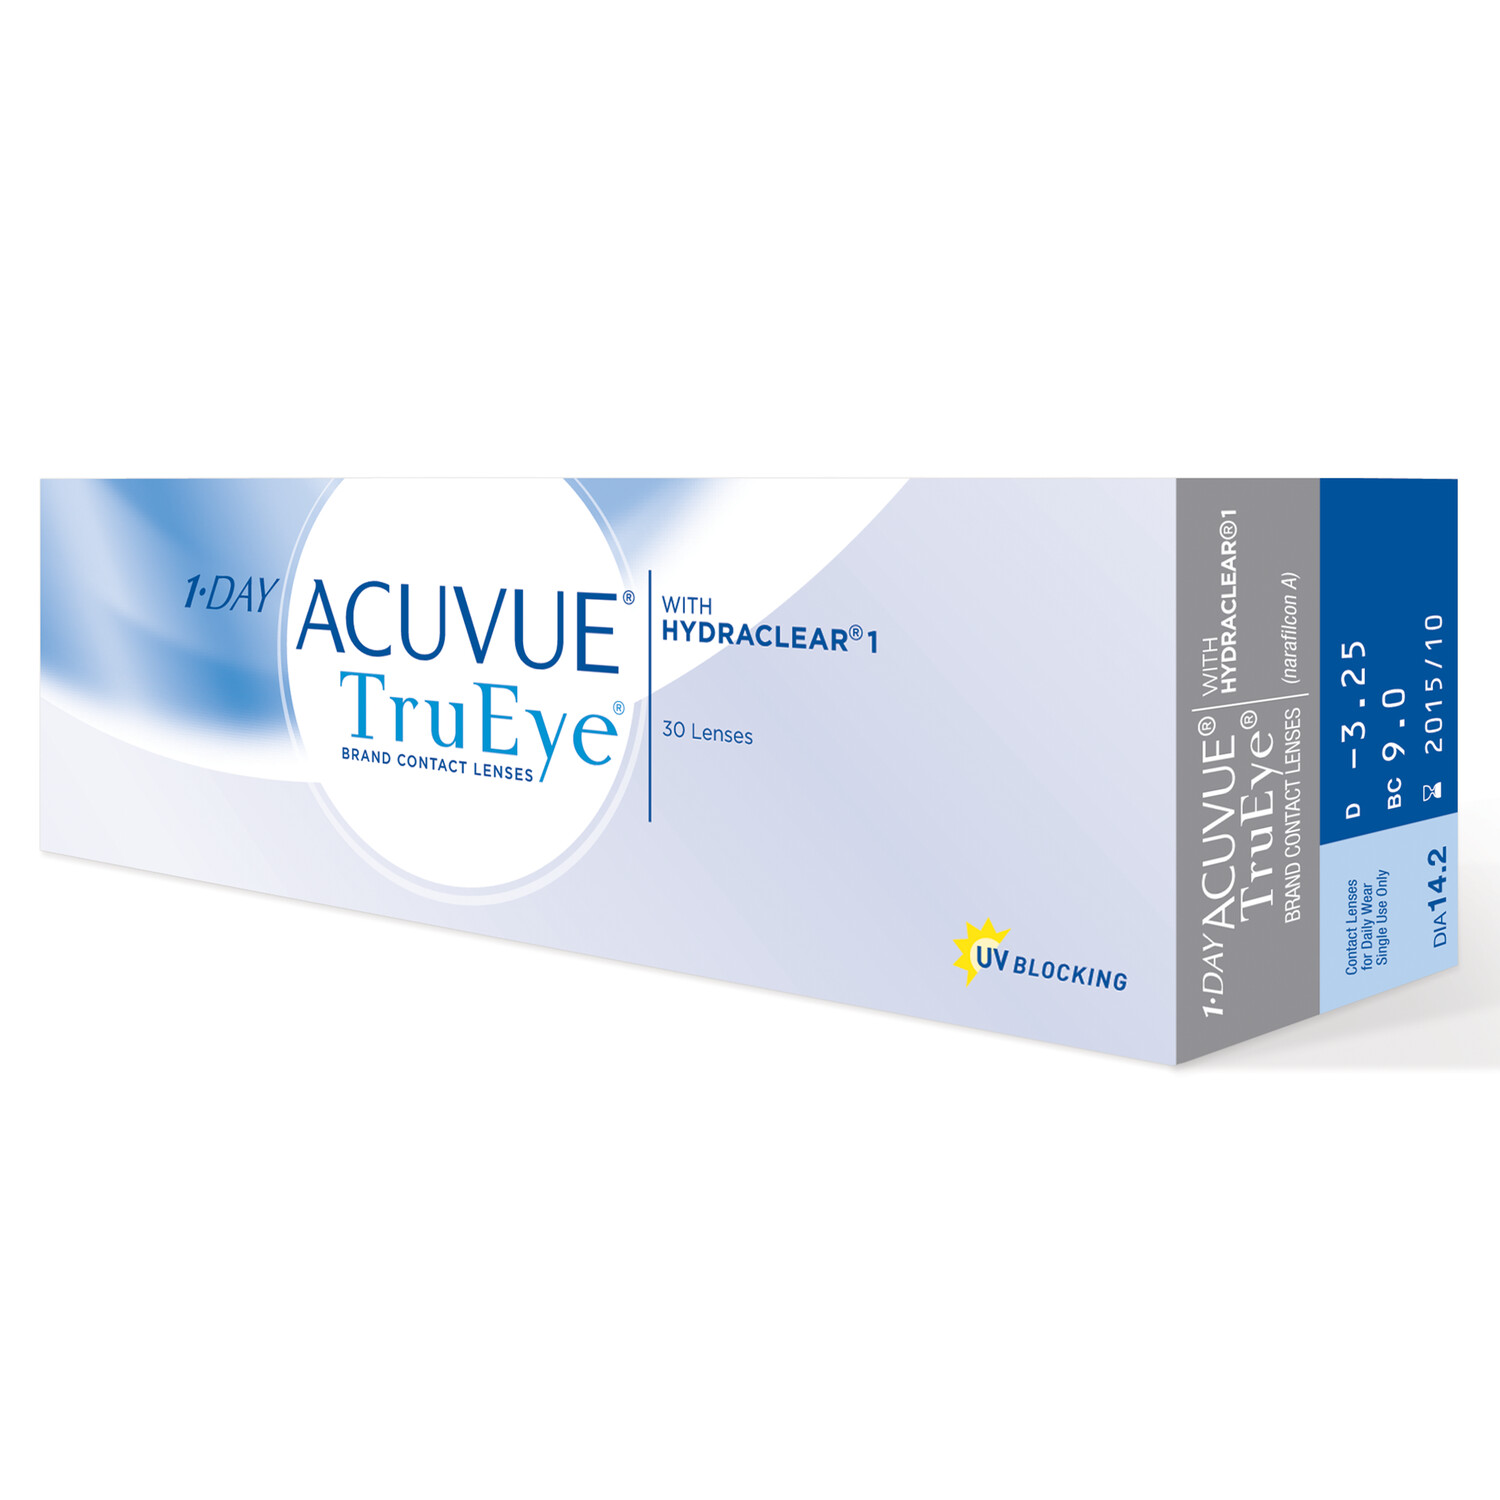 1-DAY ACUVUE® TRUEYE® 30 LENS BOX